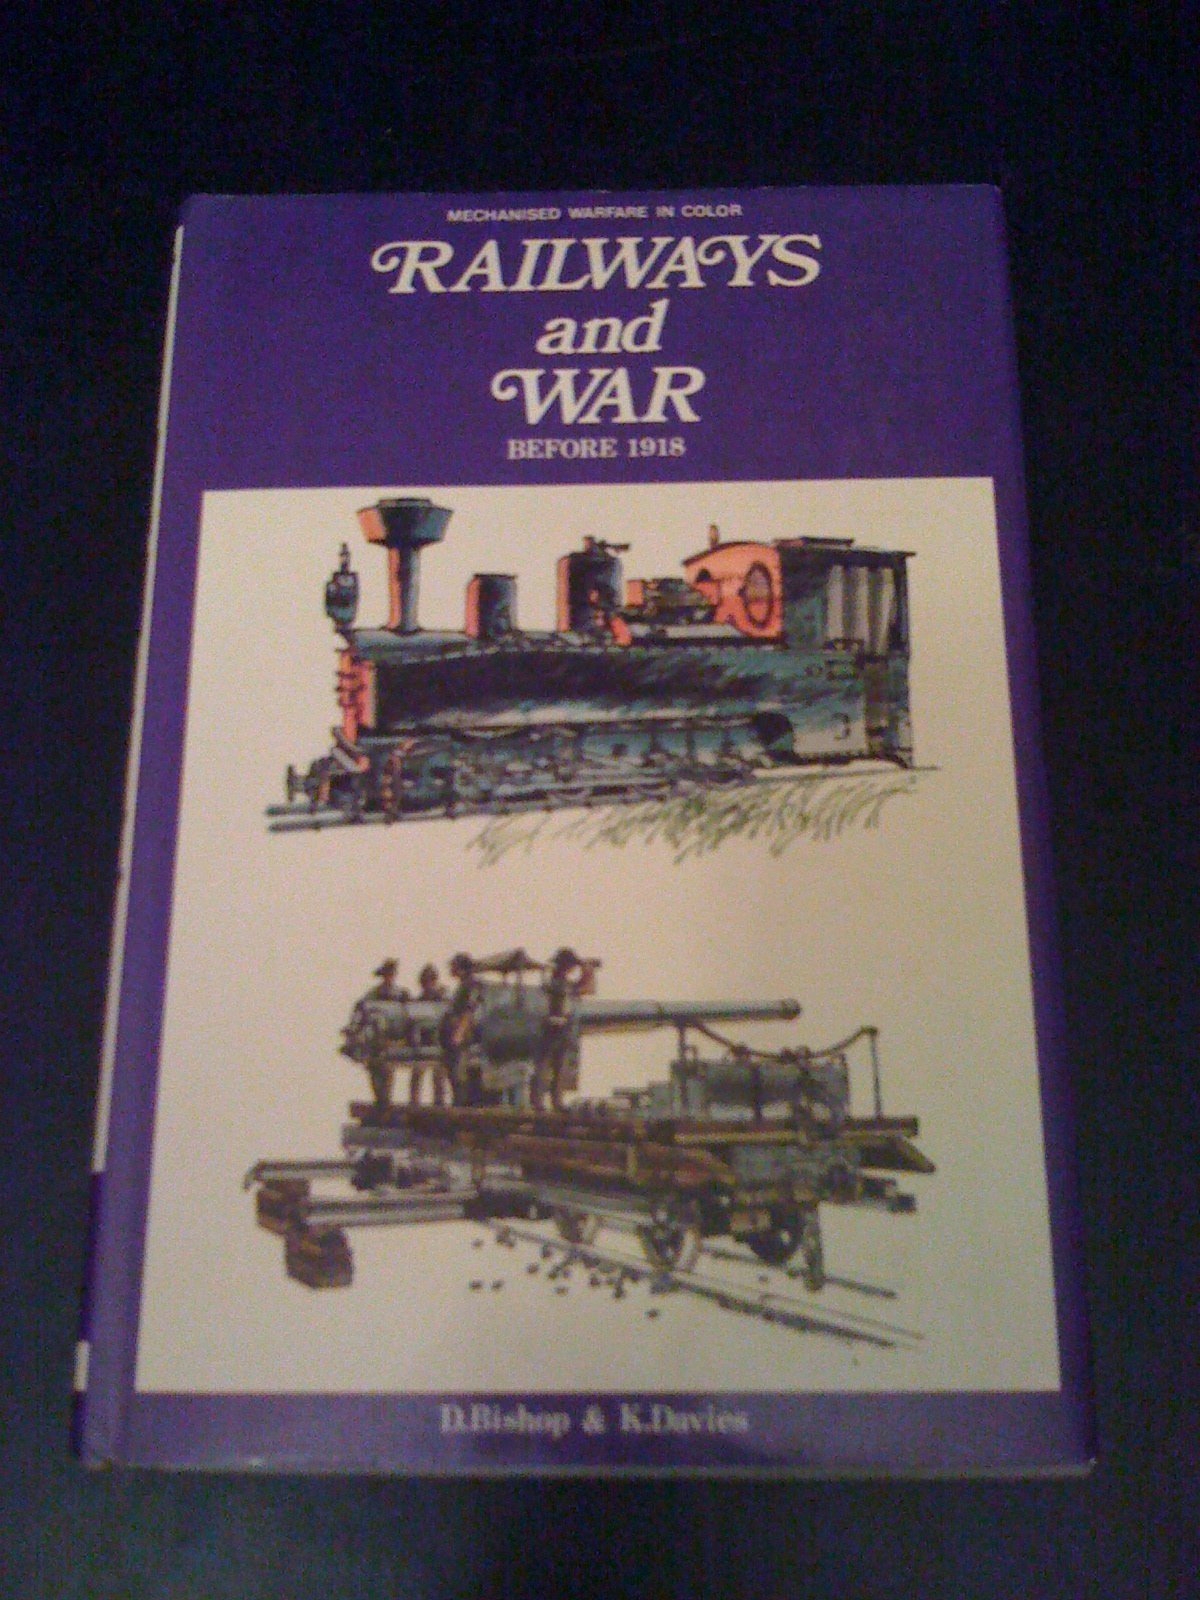 Railways and war before 1918,